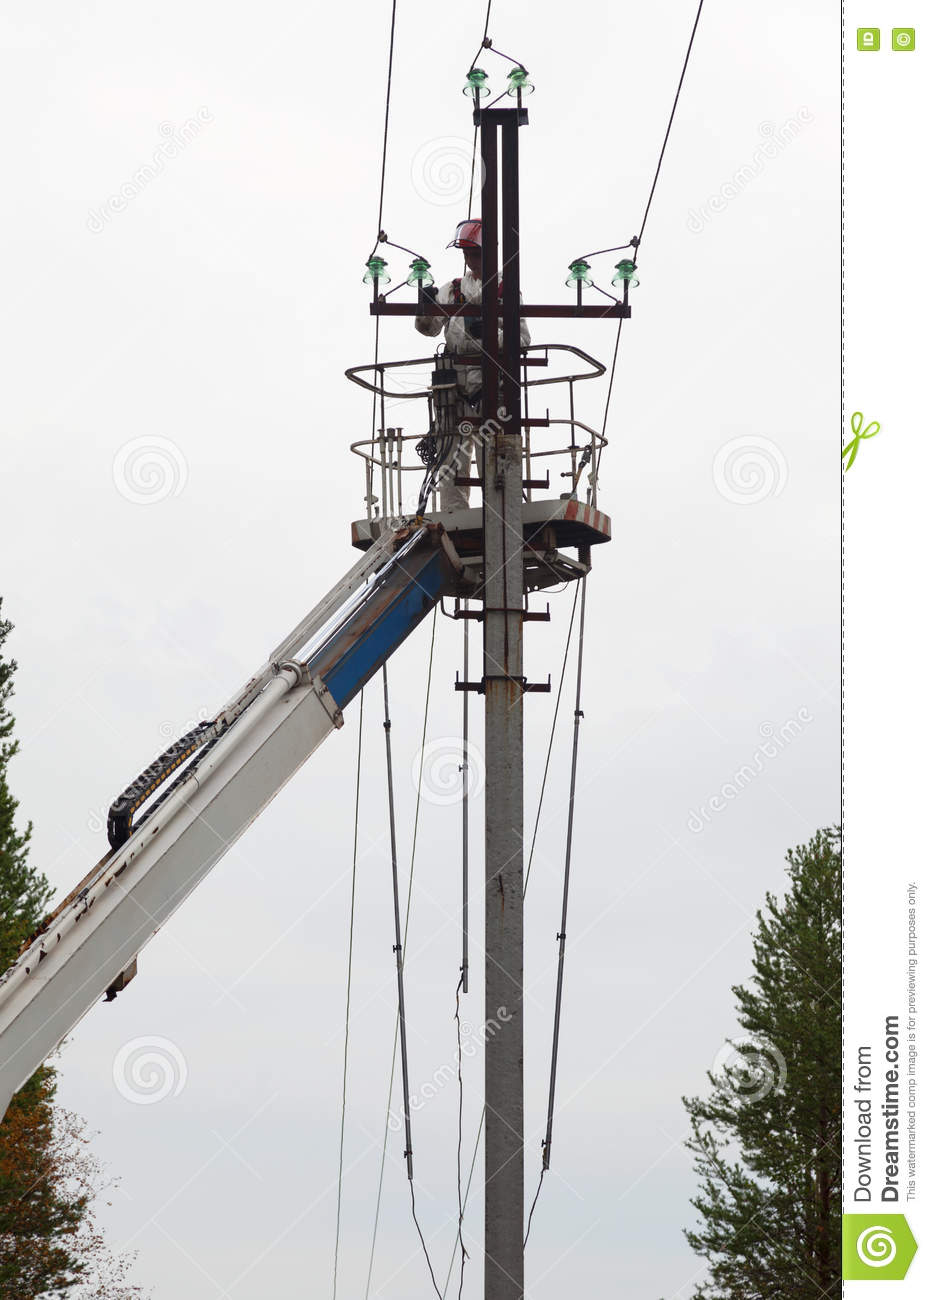 Electrician Working At A Pillar Stock Image - Image of